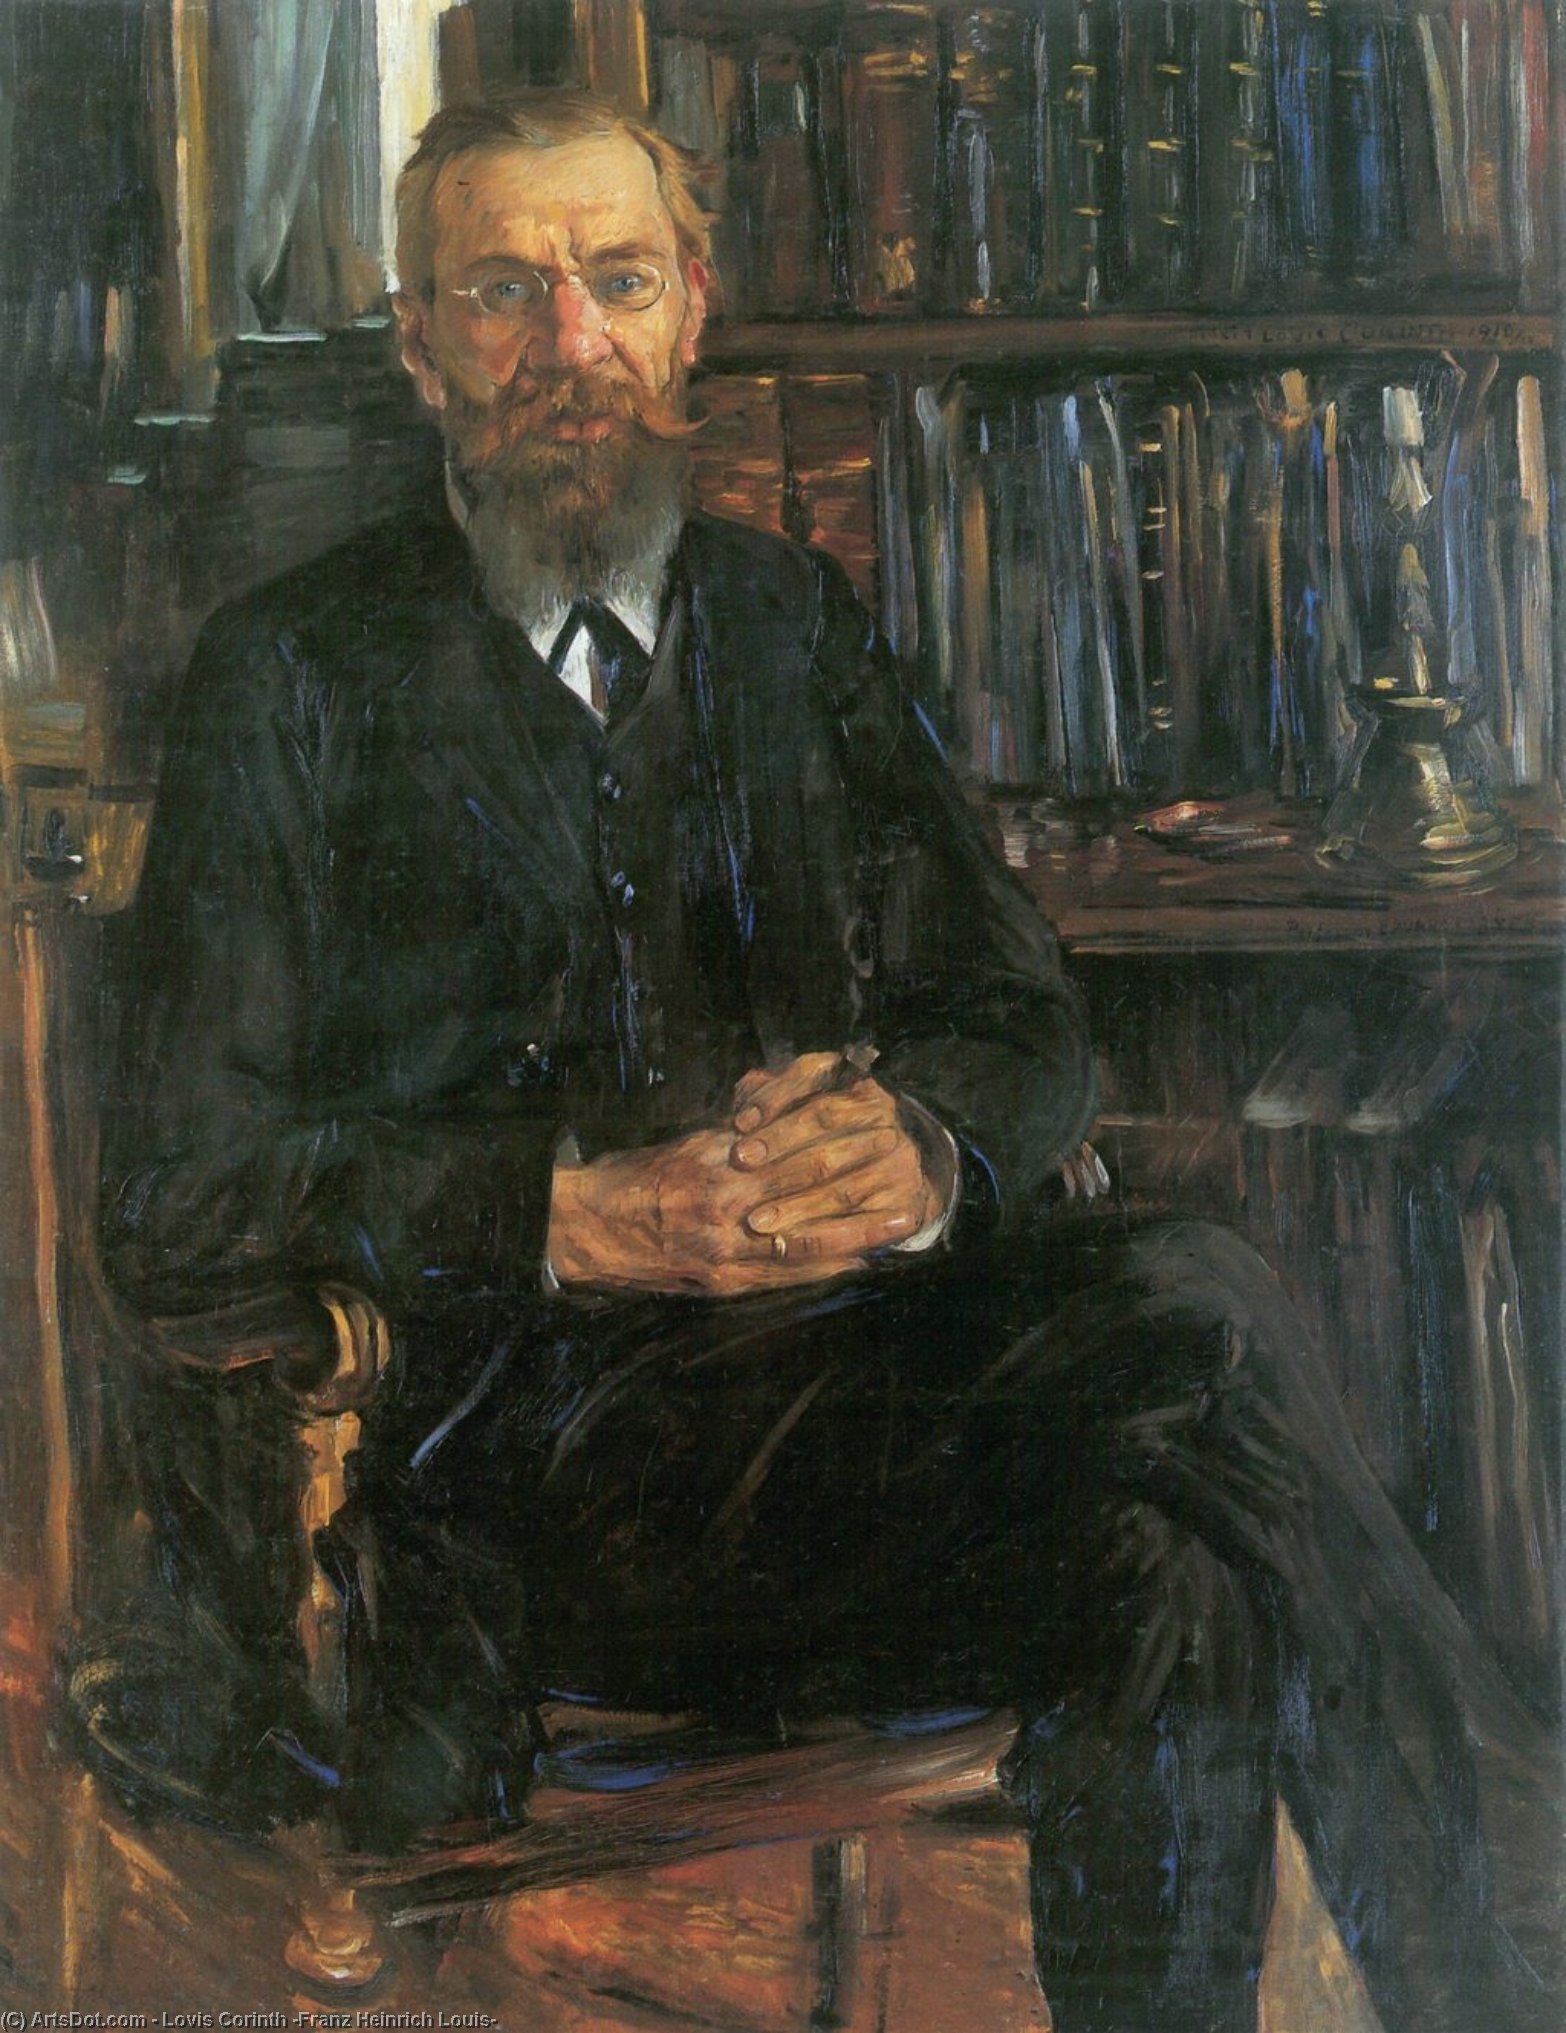 Portrait Of Dr Edward Meyer by Lovis Corinth (Franz Heinrich Louis) (1858-1925, Netherlands)